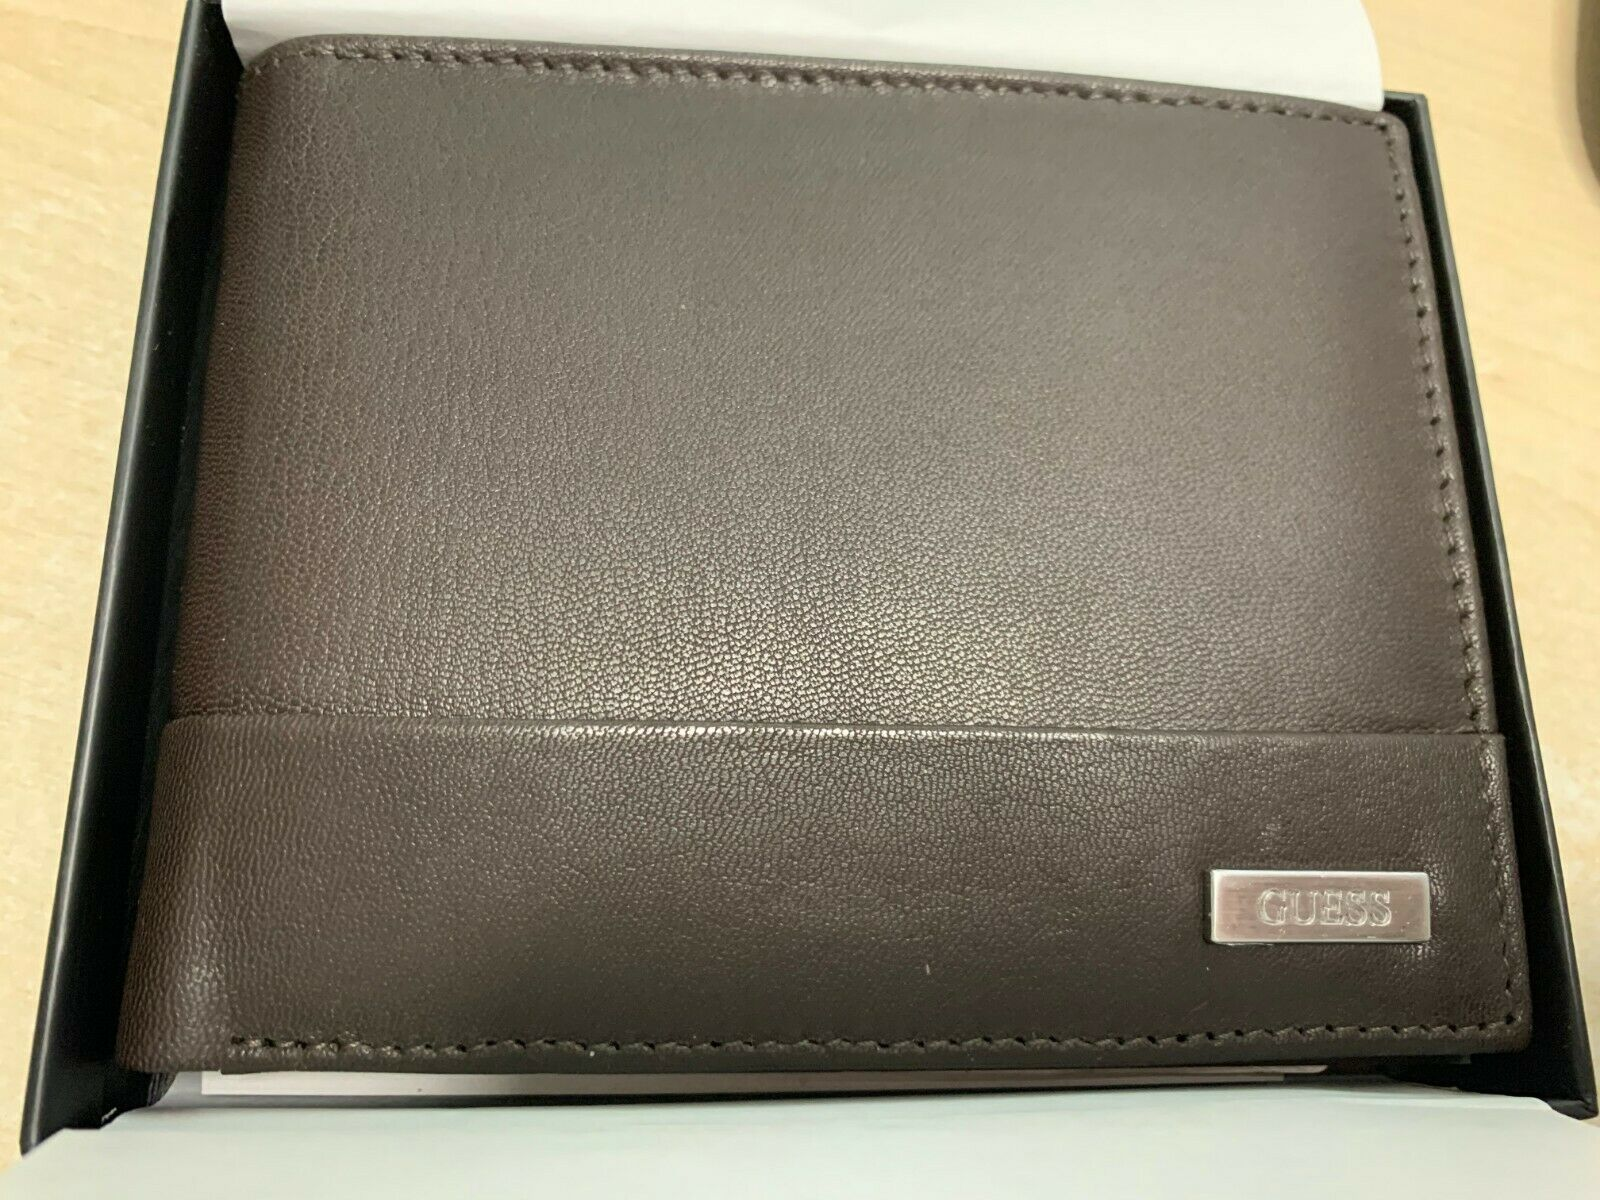 GUESS MENS LEATHER WALLET NEW IN BOX IN BROWN